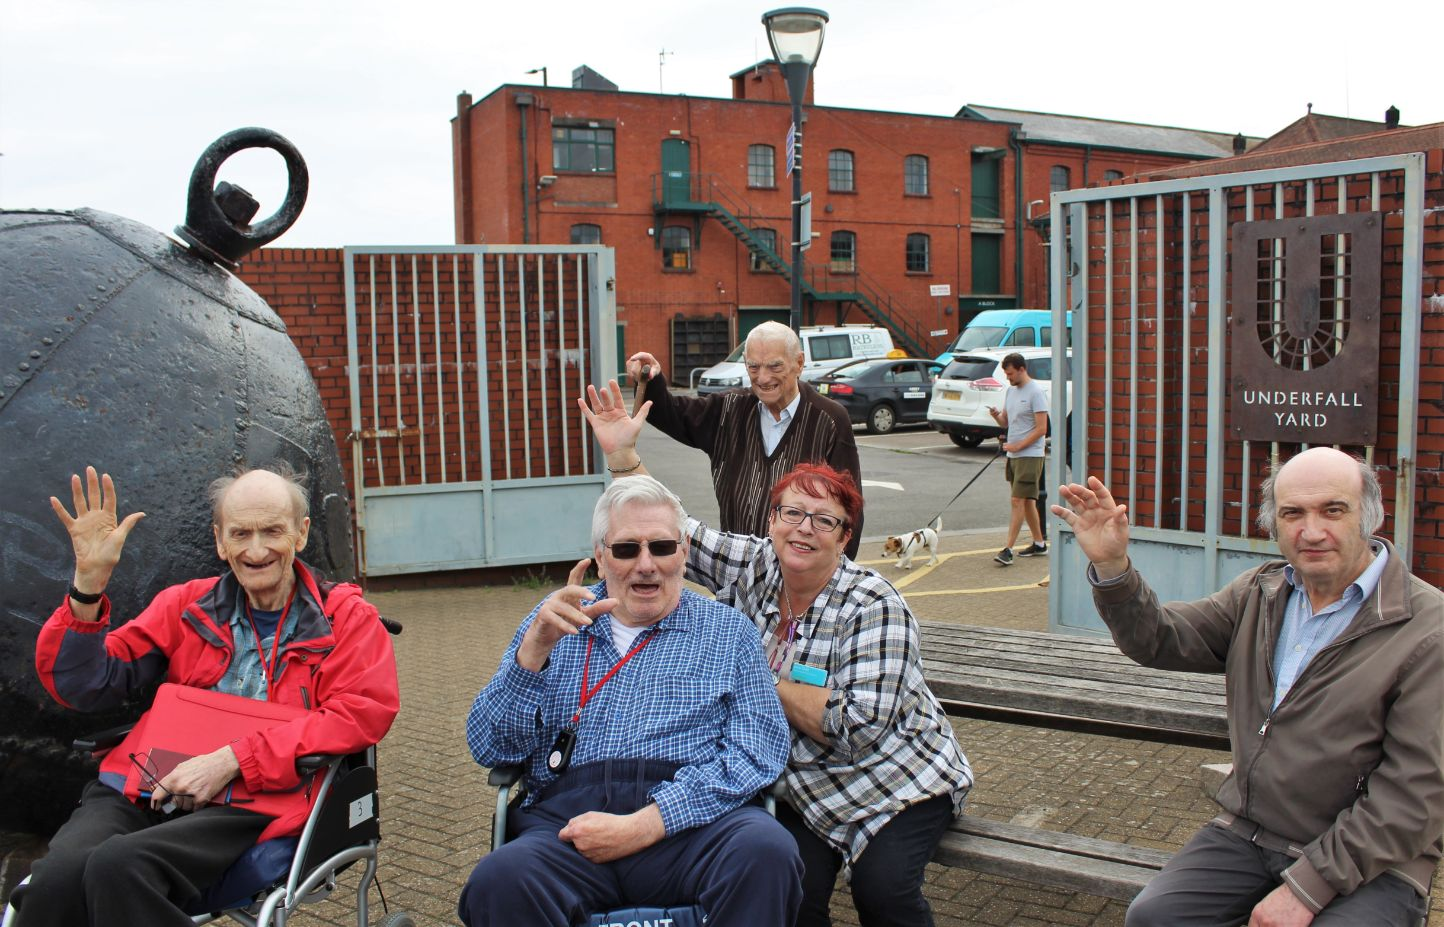 Residents at Ivybank House Care Home visit Underfall Yard in Bristol